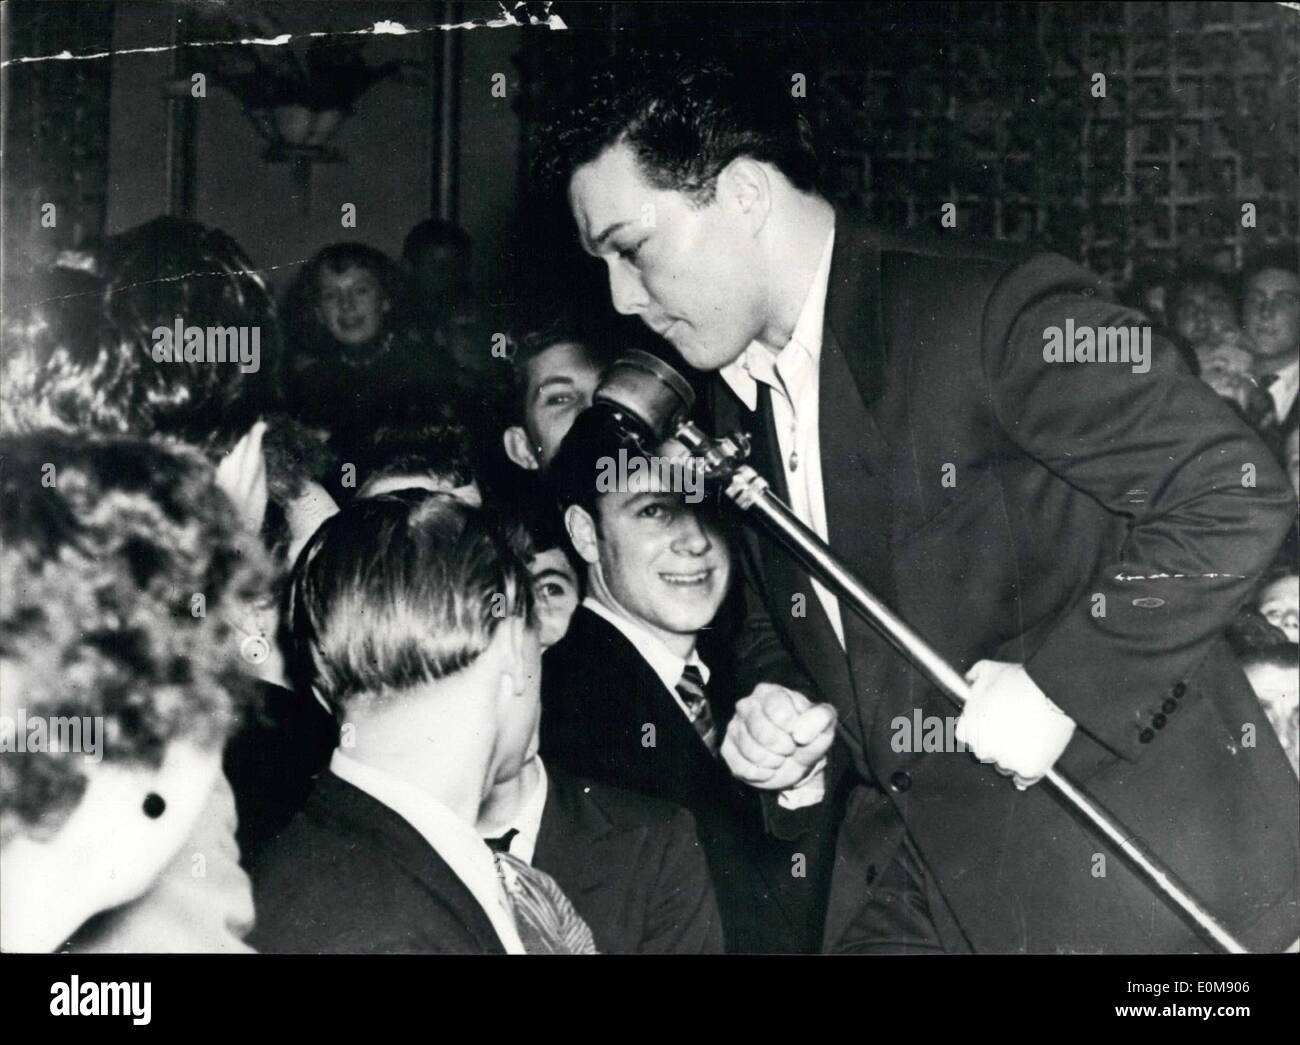 Feb. 02, 1954 - Teenagers At A Swing Session.: in British dance halls, where jazz sessions attract hundreds of teenagers and the floor is so crowded dancing becomes almost impossible, something like hysteria can develop. This picture was taken at the Brighton aquaria palais. Nearly 3,000 young people crowded the hall, many of them climbing on chairs and tables to glimpse their idols of song and hot music when band leader Ted Heath with singers Dickie Valentine and Lita Roza were performing - Stock Image